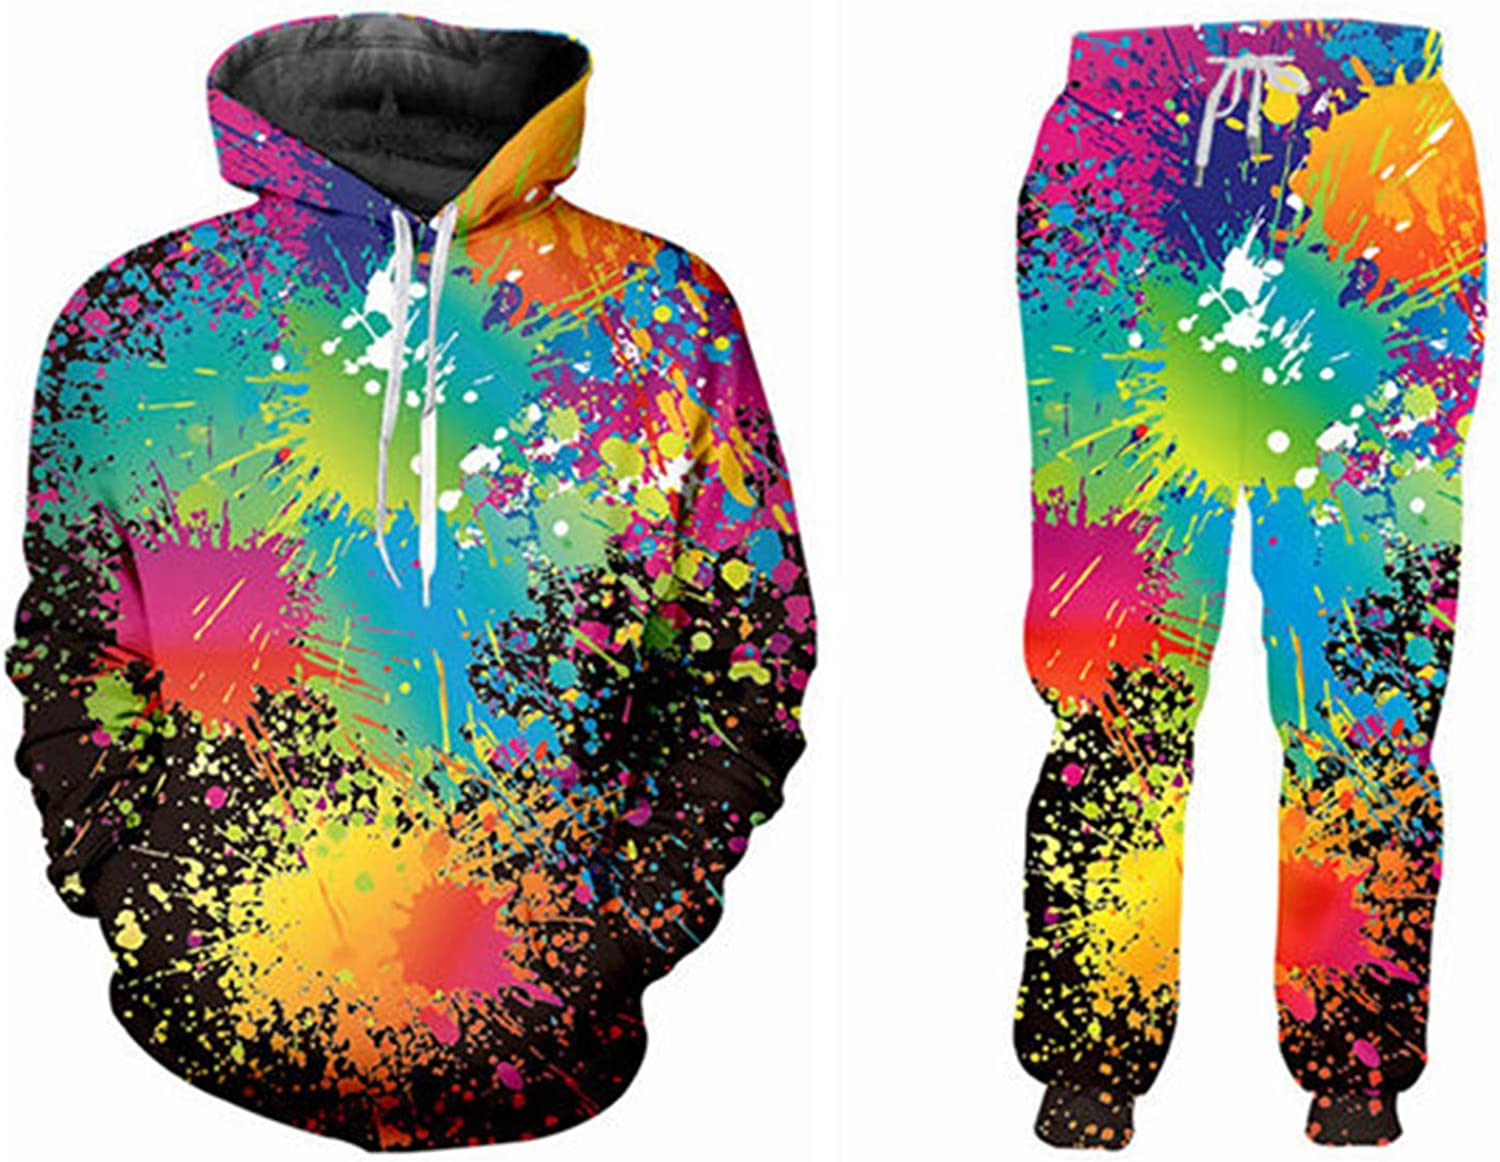 Cool 3D Free shipping anywhere in the nation Rainbow Paint All Over and Print Tracksuit Ranking TOP11 Hoodie Pants